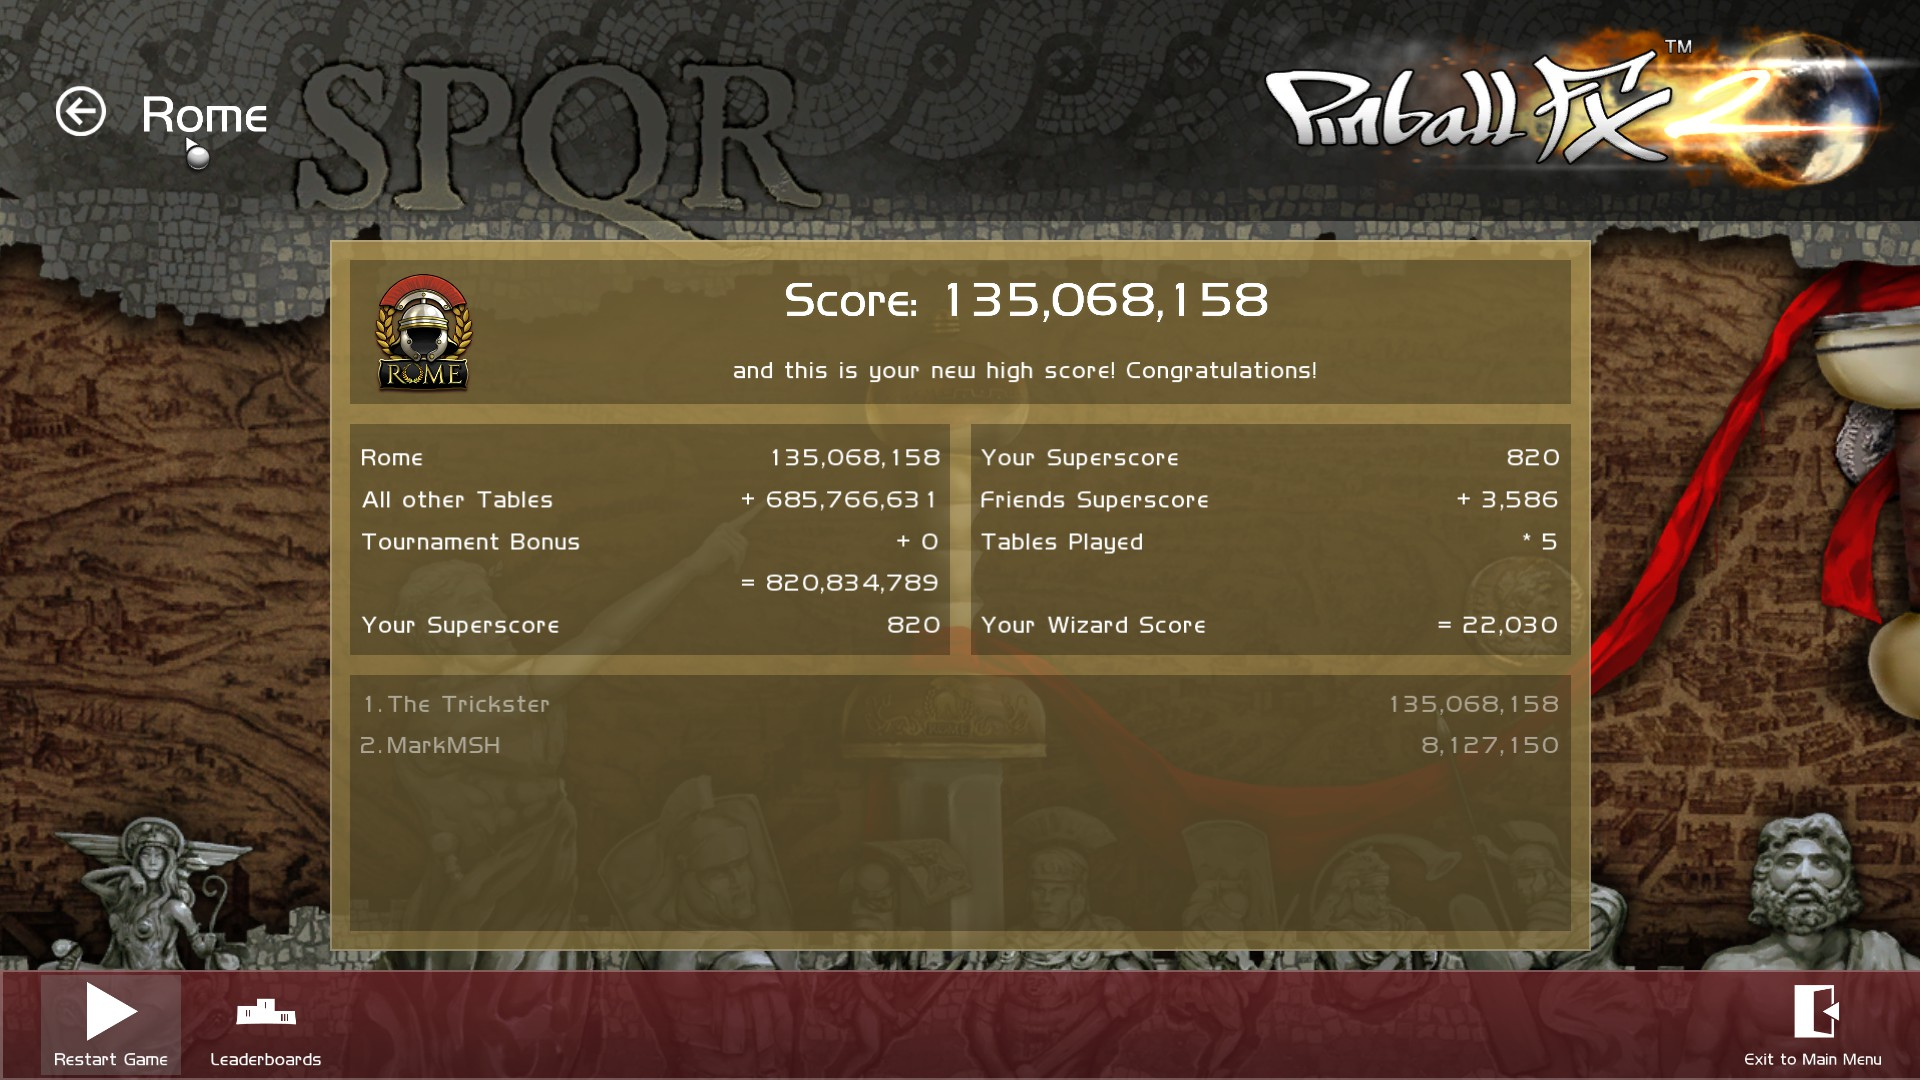 Pinball FX 2: Rome 135,068,158 points